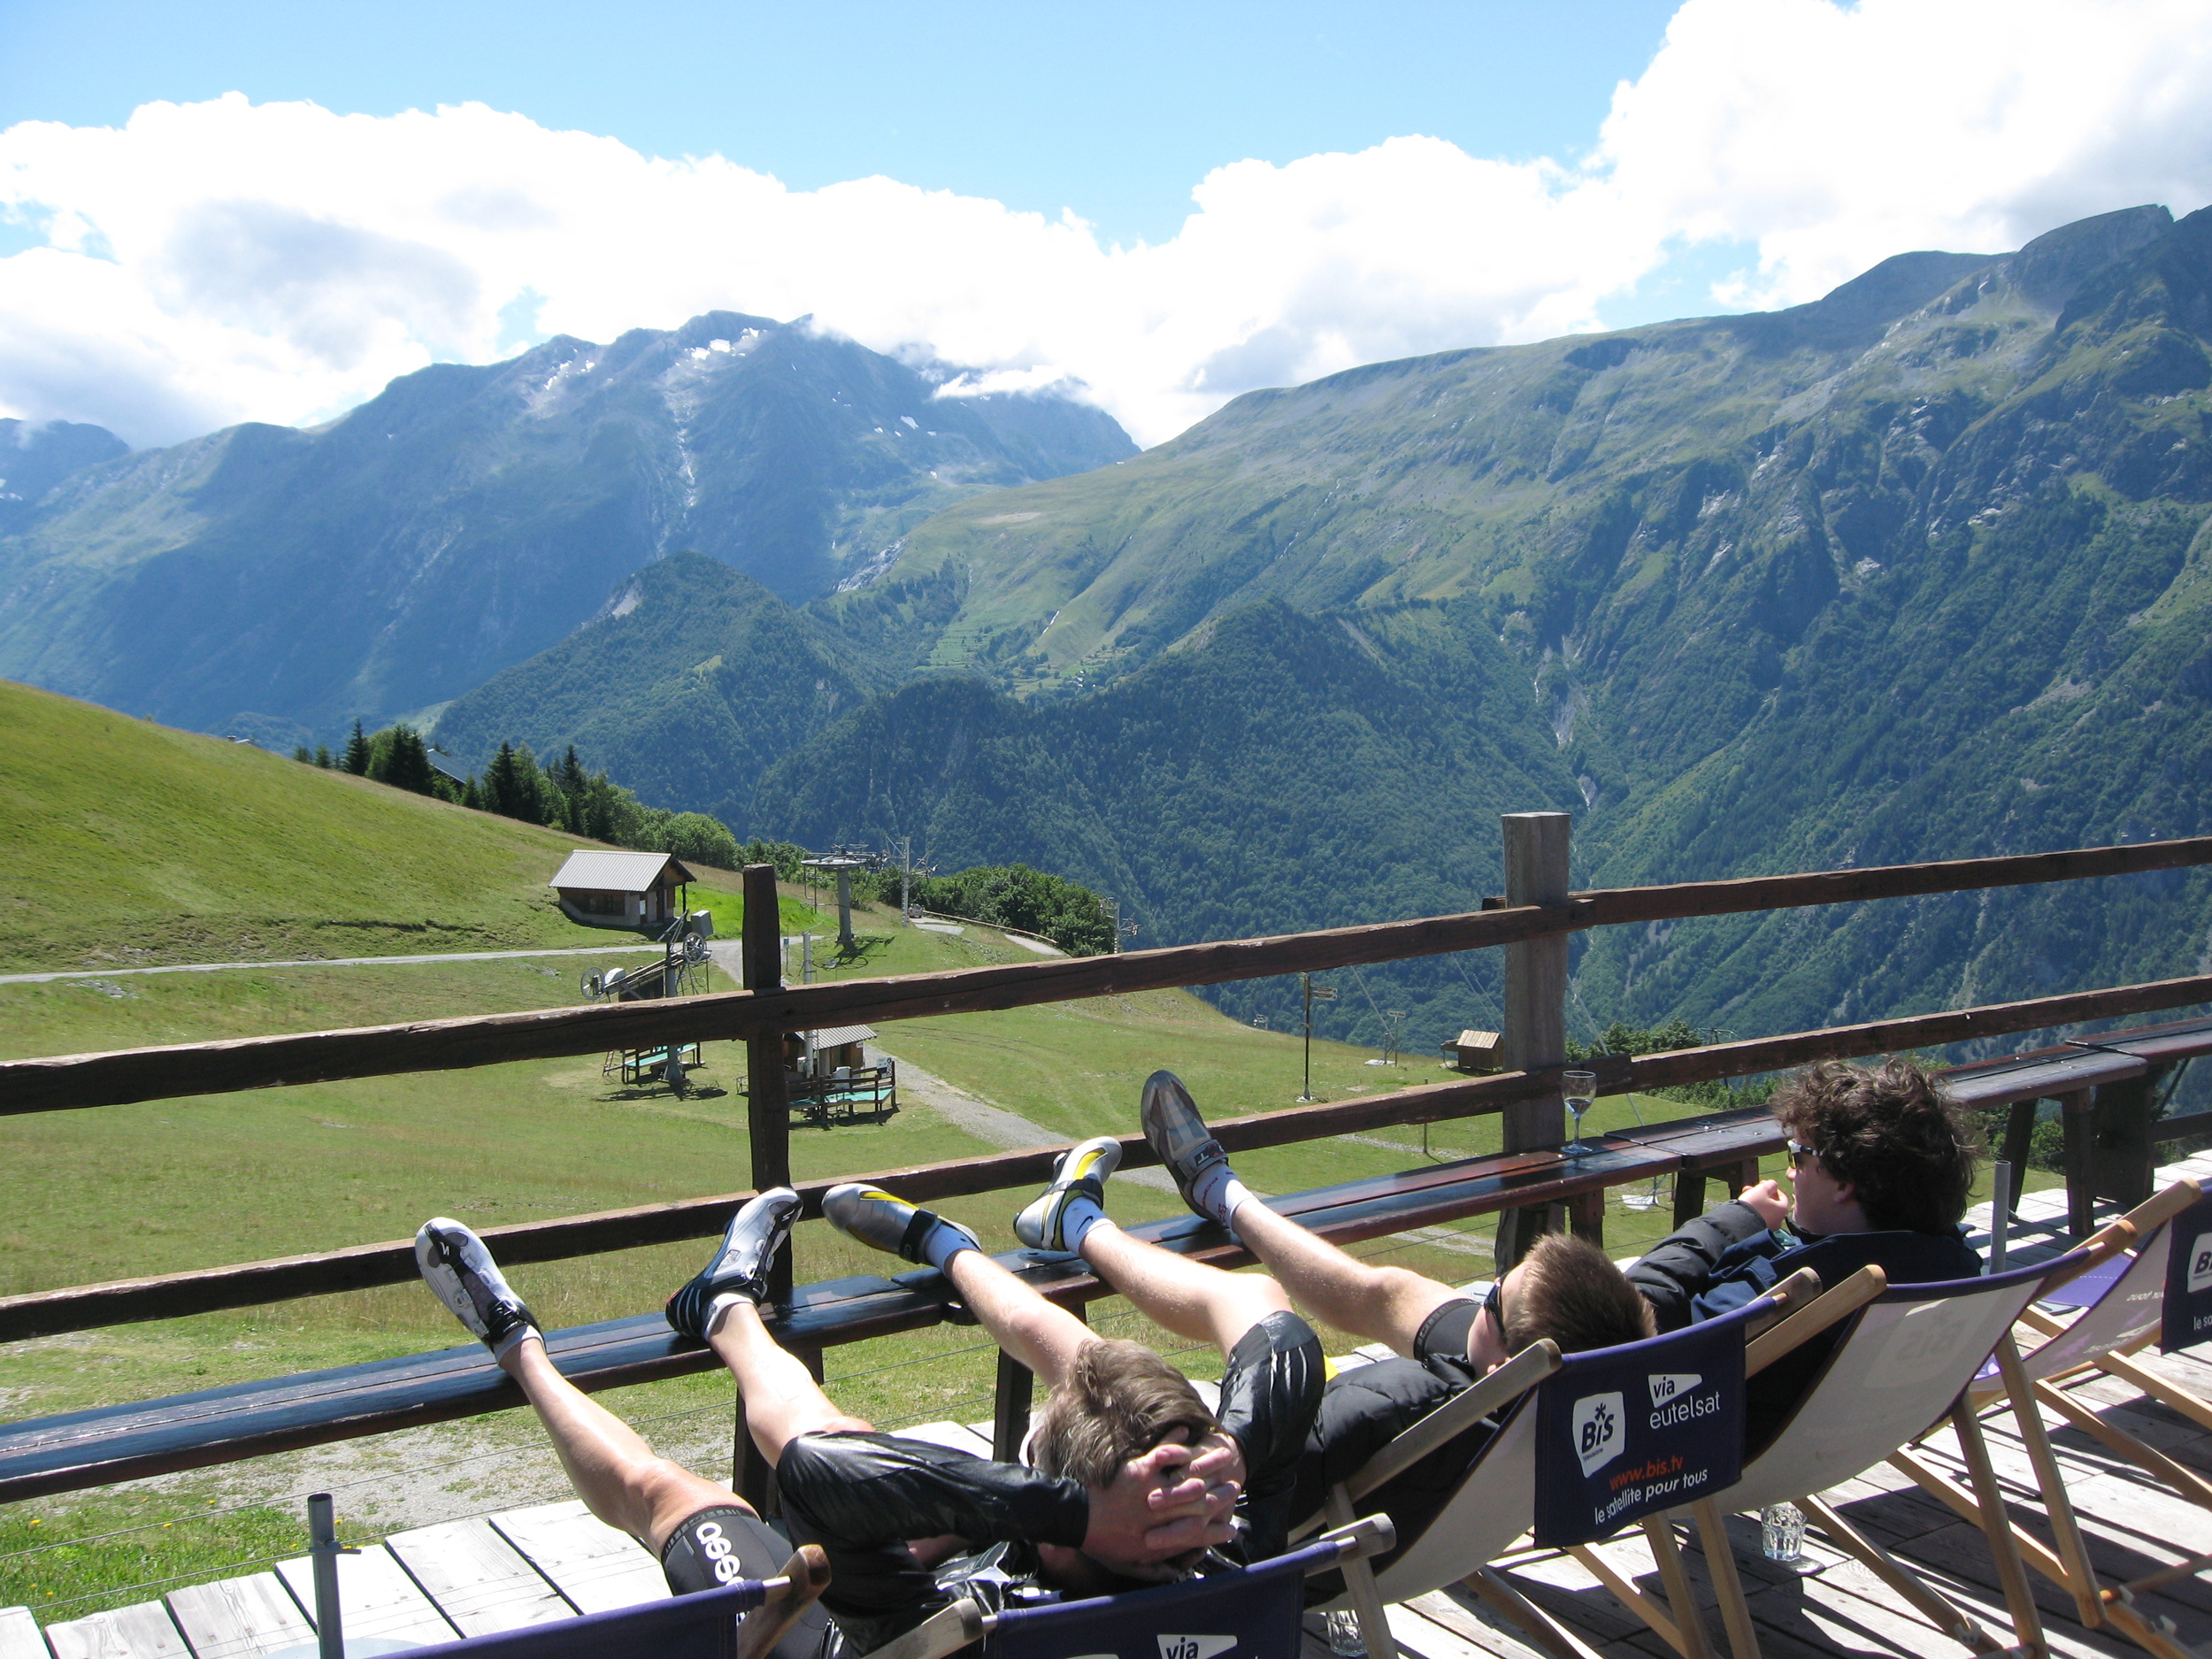 The view from one of my favourite little restaurants in the French Alps, hiding along a dirt road, high above Bourg d'Oisans